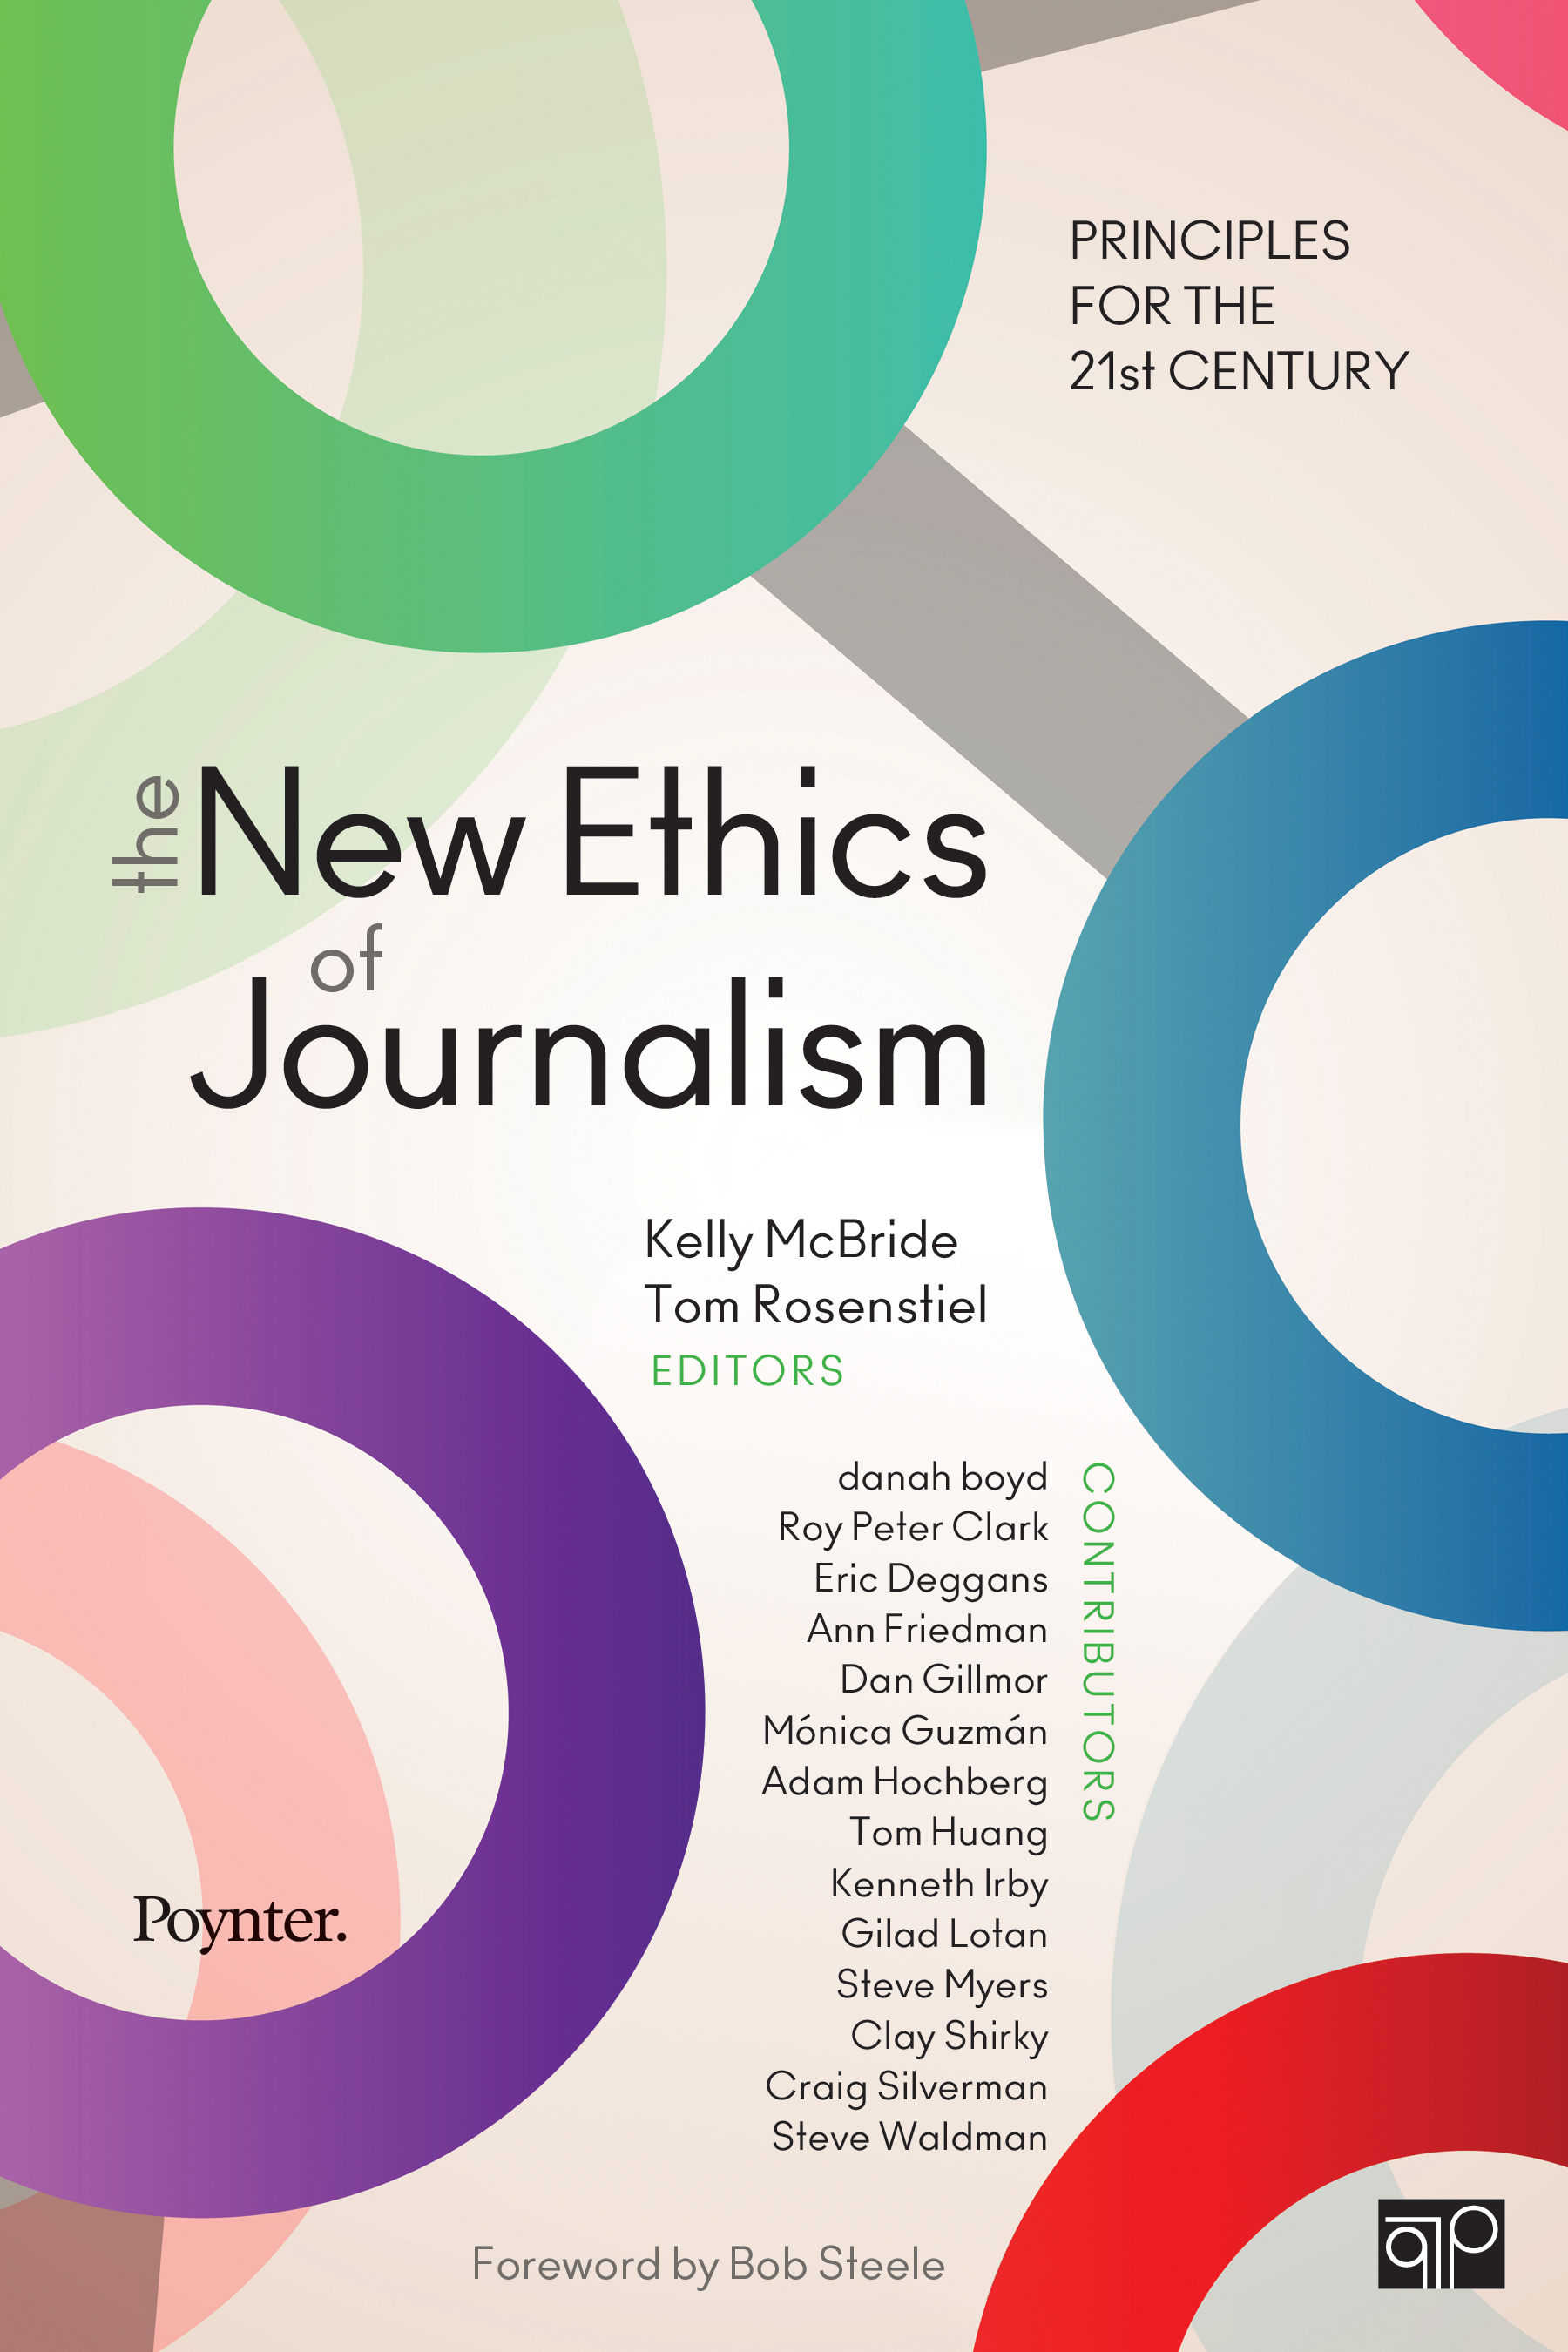 Download Ebook The New Ethics of Journalism by Kelly B. McBride Pdf